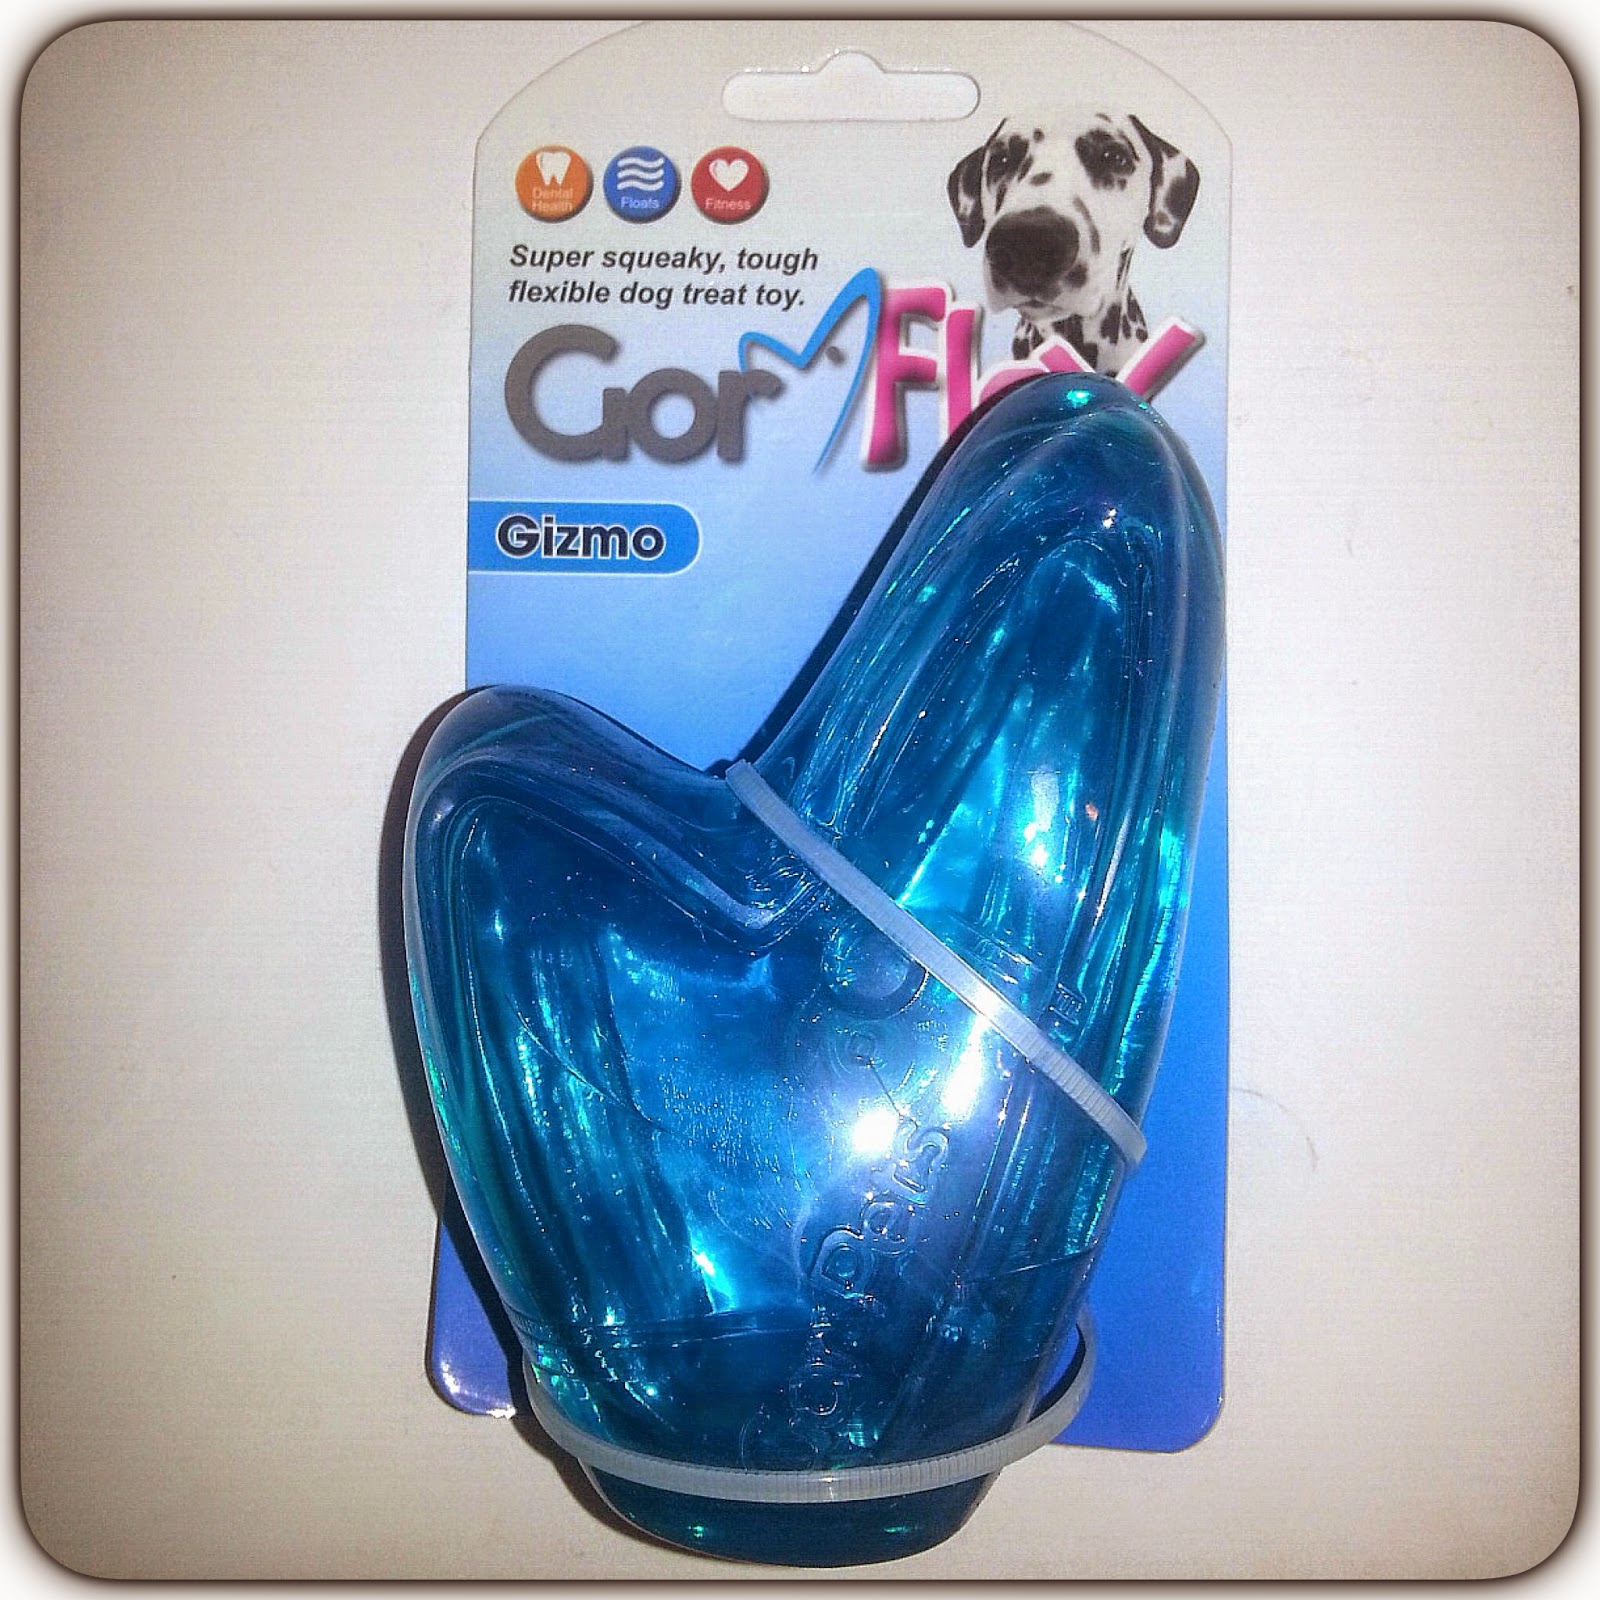 A Spaniels Tail Gor Flex Gizmo dog toy